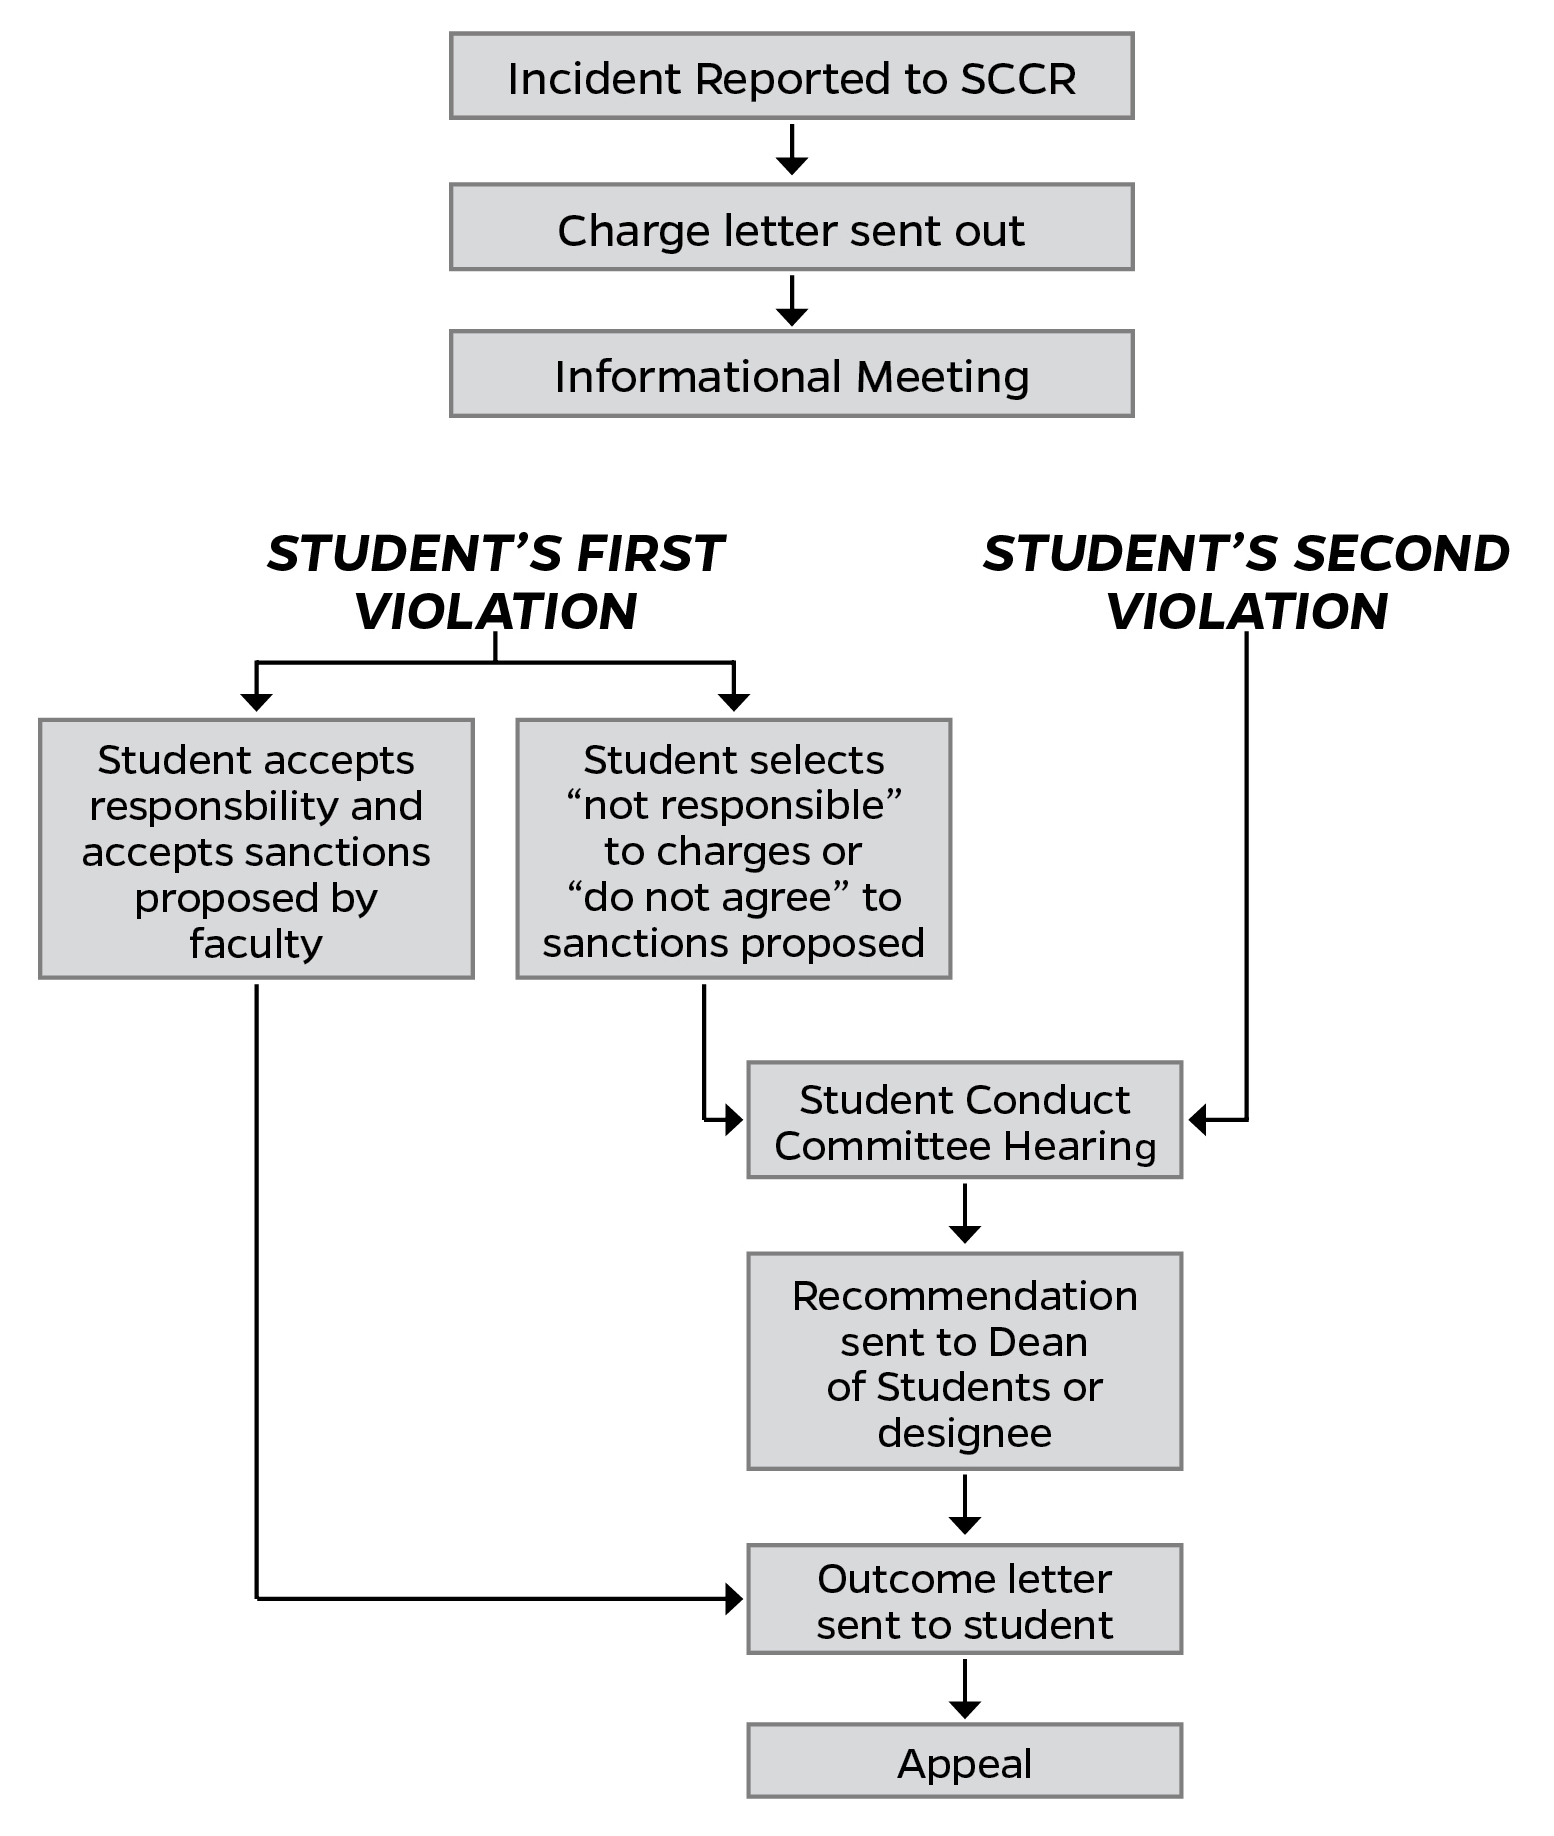 """This is an image depicting the Student Honor Code process, as explained in the Student Conduct Code and Student Honor Code. In summary, once an incident is reported to Student Conduct and Conflict Resolution (SCCR), a charge letter will be issued out and an information meeting will be scheduled. If this is the student's first violation, the student can either accept or deny responsibility. If the student accepts responsibility and the sanctions proposed by faculty, an outcome letter is sent to the student. The student can then fulfill the sanctions or appeal the decision. If the student selects """"not responsible"""" to the charges or """"do not agree"""" to the sanctions proposed, a Student Conduct Committee hearing will be scheduled. After the hearing, a recommendation will be sent to the Dean of Students or designee for a decision. An outcome letter will be sent to the student. The student can then fulfill the sanctions or appeal the decision. If this is the student's second violation, a Student Conduct Committee hearing will be scheduled. After the hearing, a recommendation will be sent to the Dean of Students or designee for a decision. An outcome letter will be sent to the student. The student can then fulfill the sanctions or appeal the decision."""